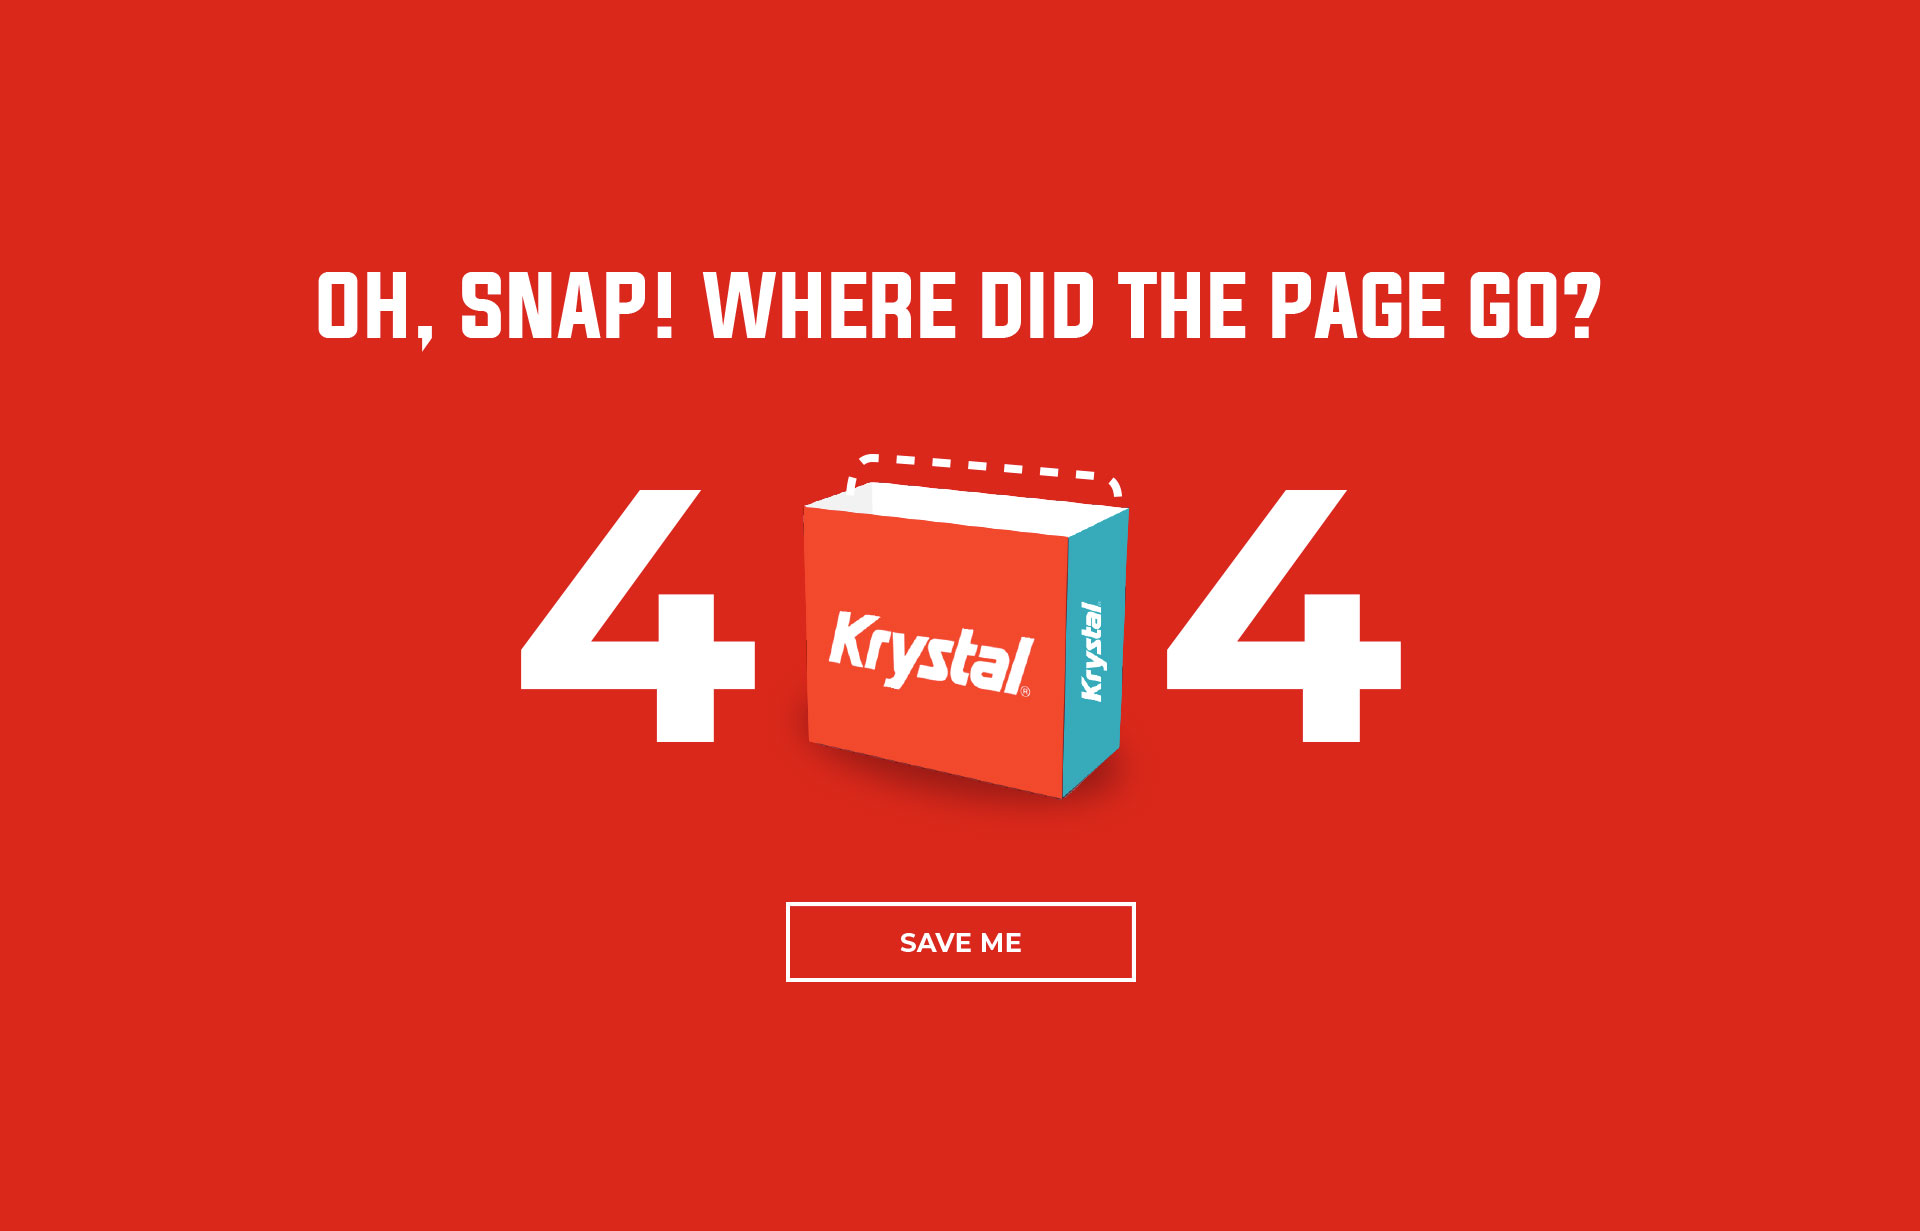 404 error page with an empty Krystal box where the zero is located.